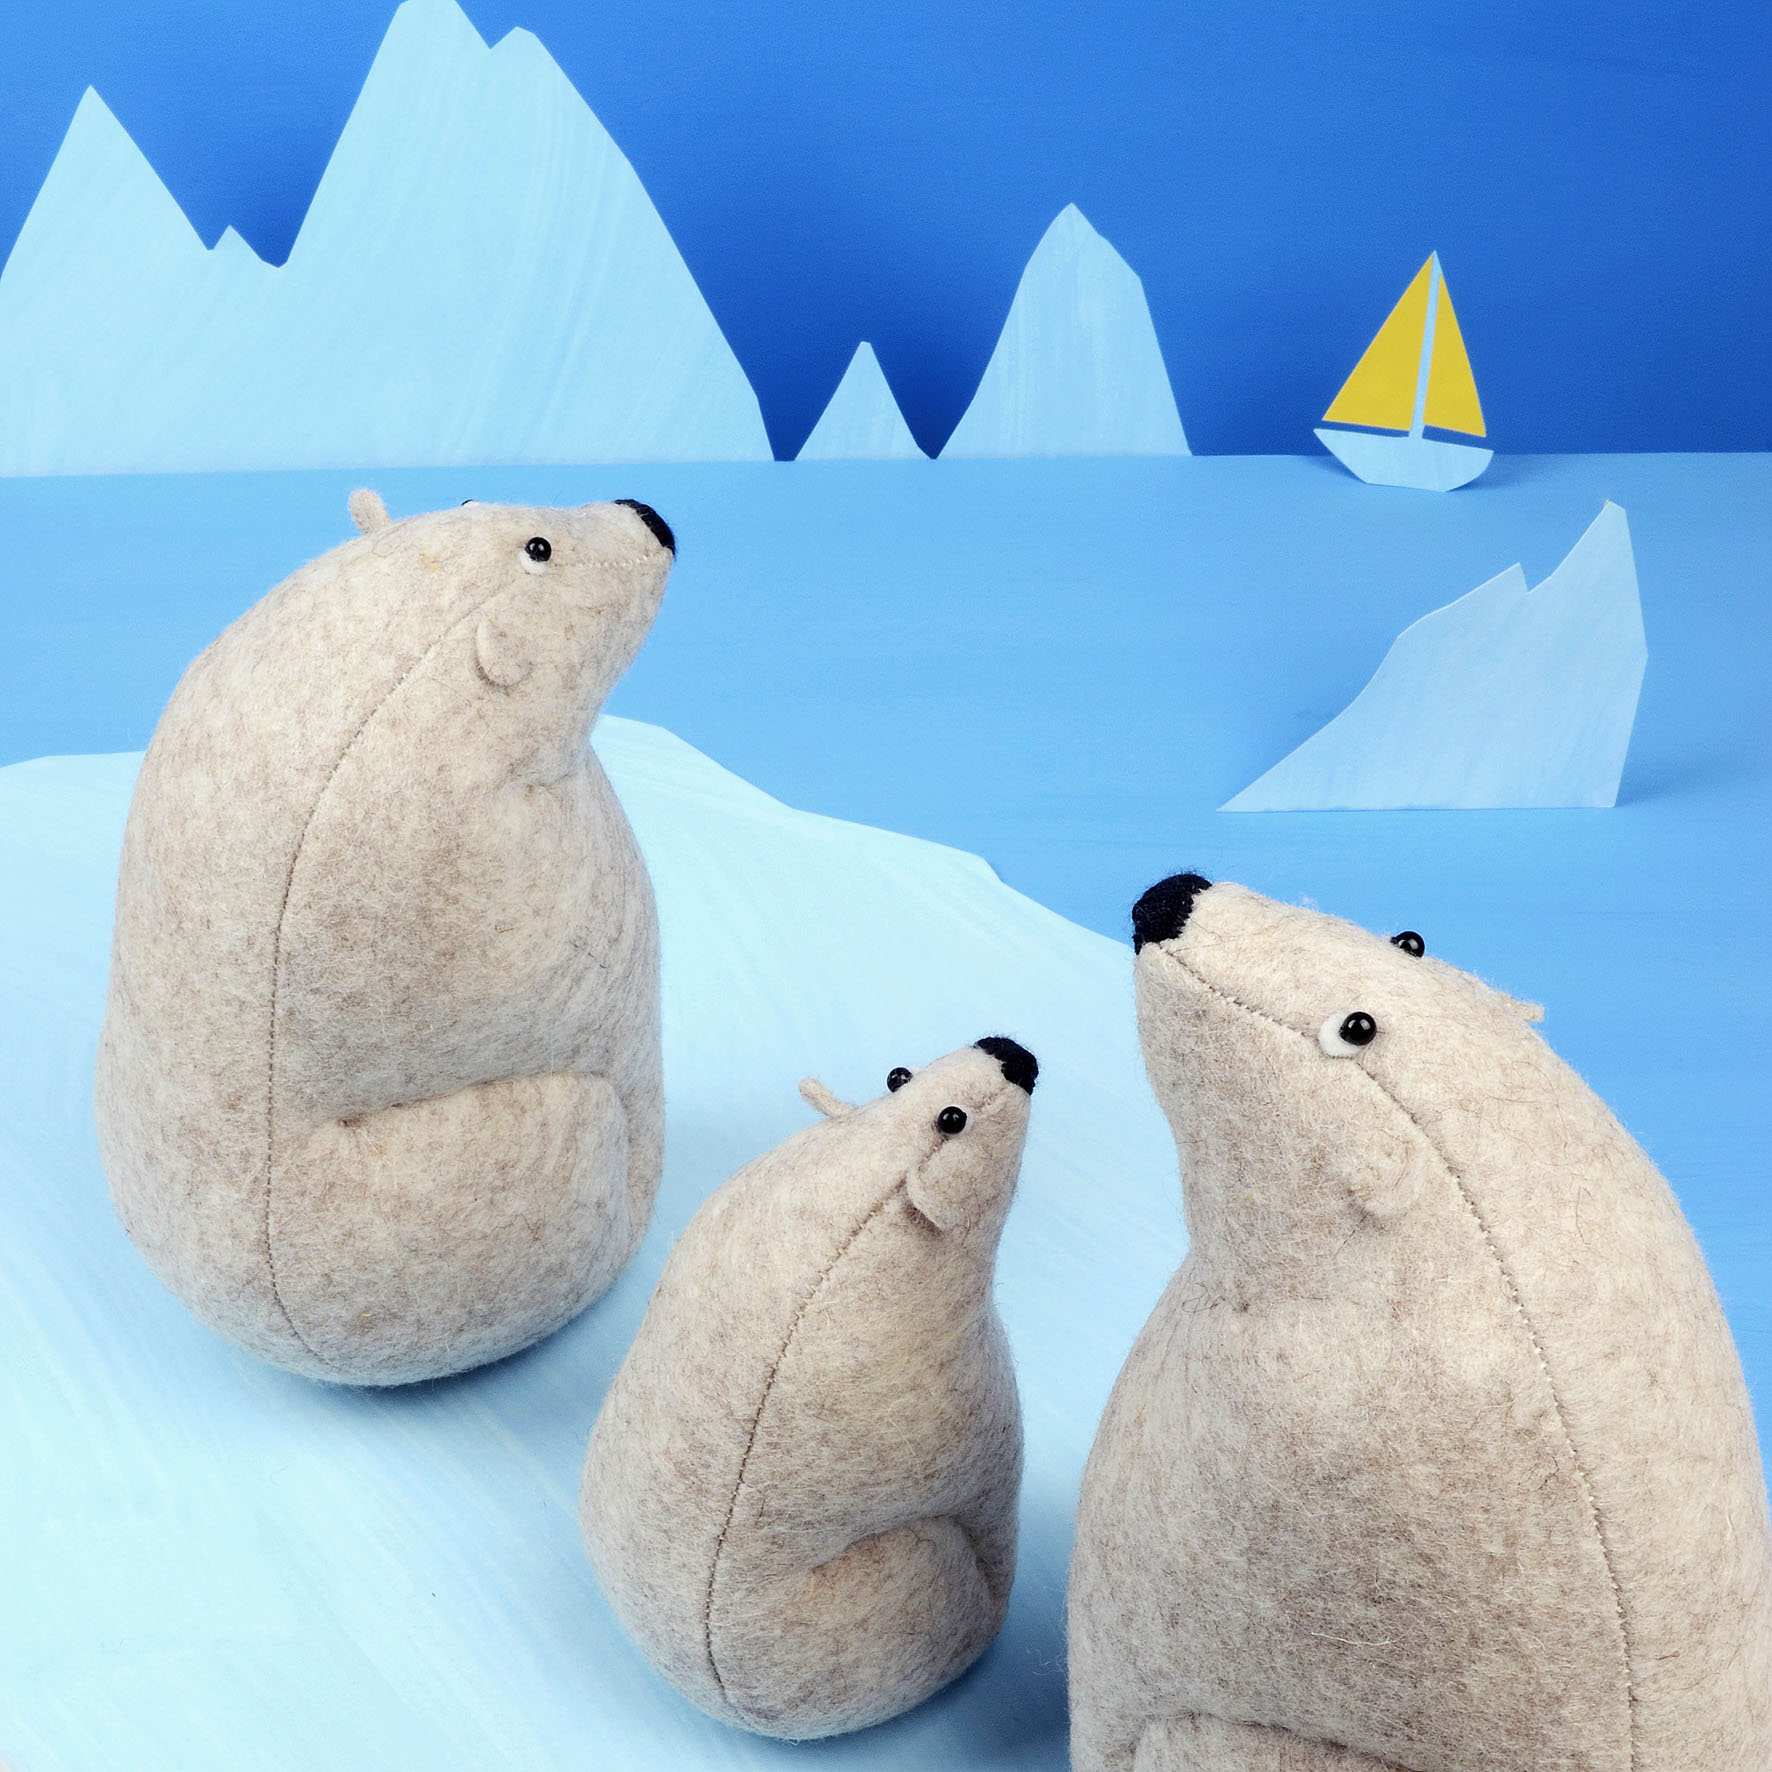 Handmade polar bear felt soft sculptures.